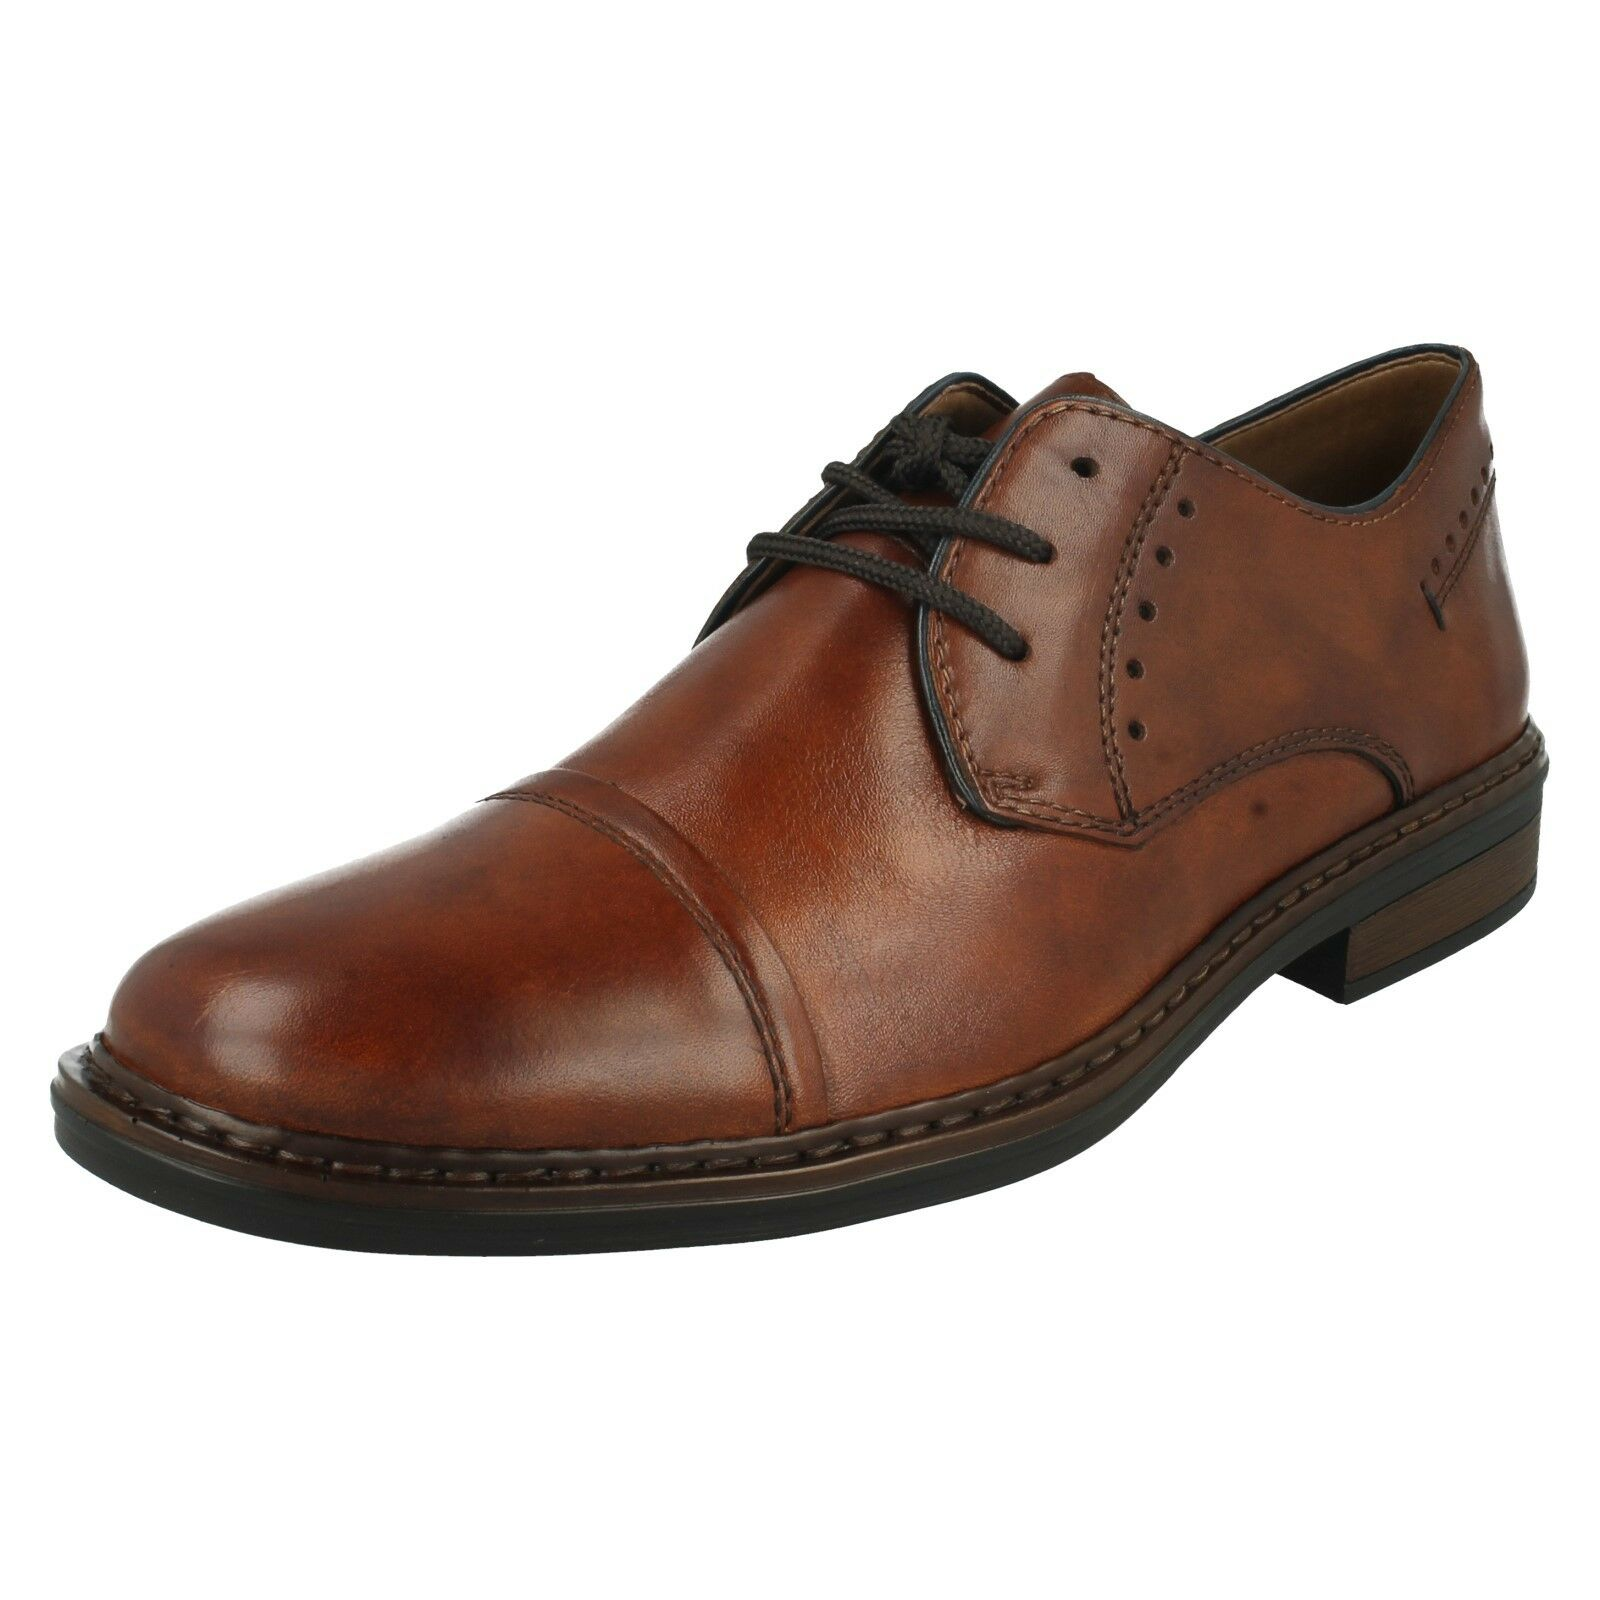 RIEKER MENS 17617 LACE UP LEATHER OFFICE SMART FORMAL EXTRA EXTRA EXTRA WIDE TOE CAP schuhe 642250